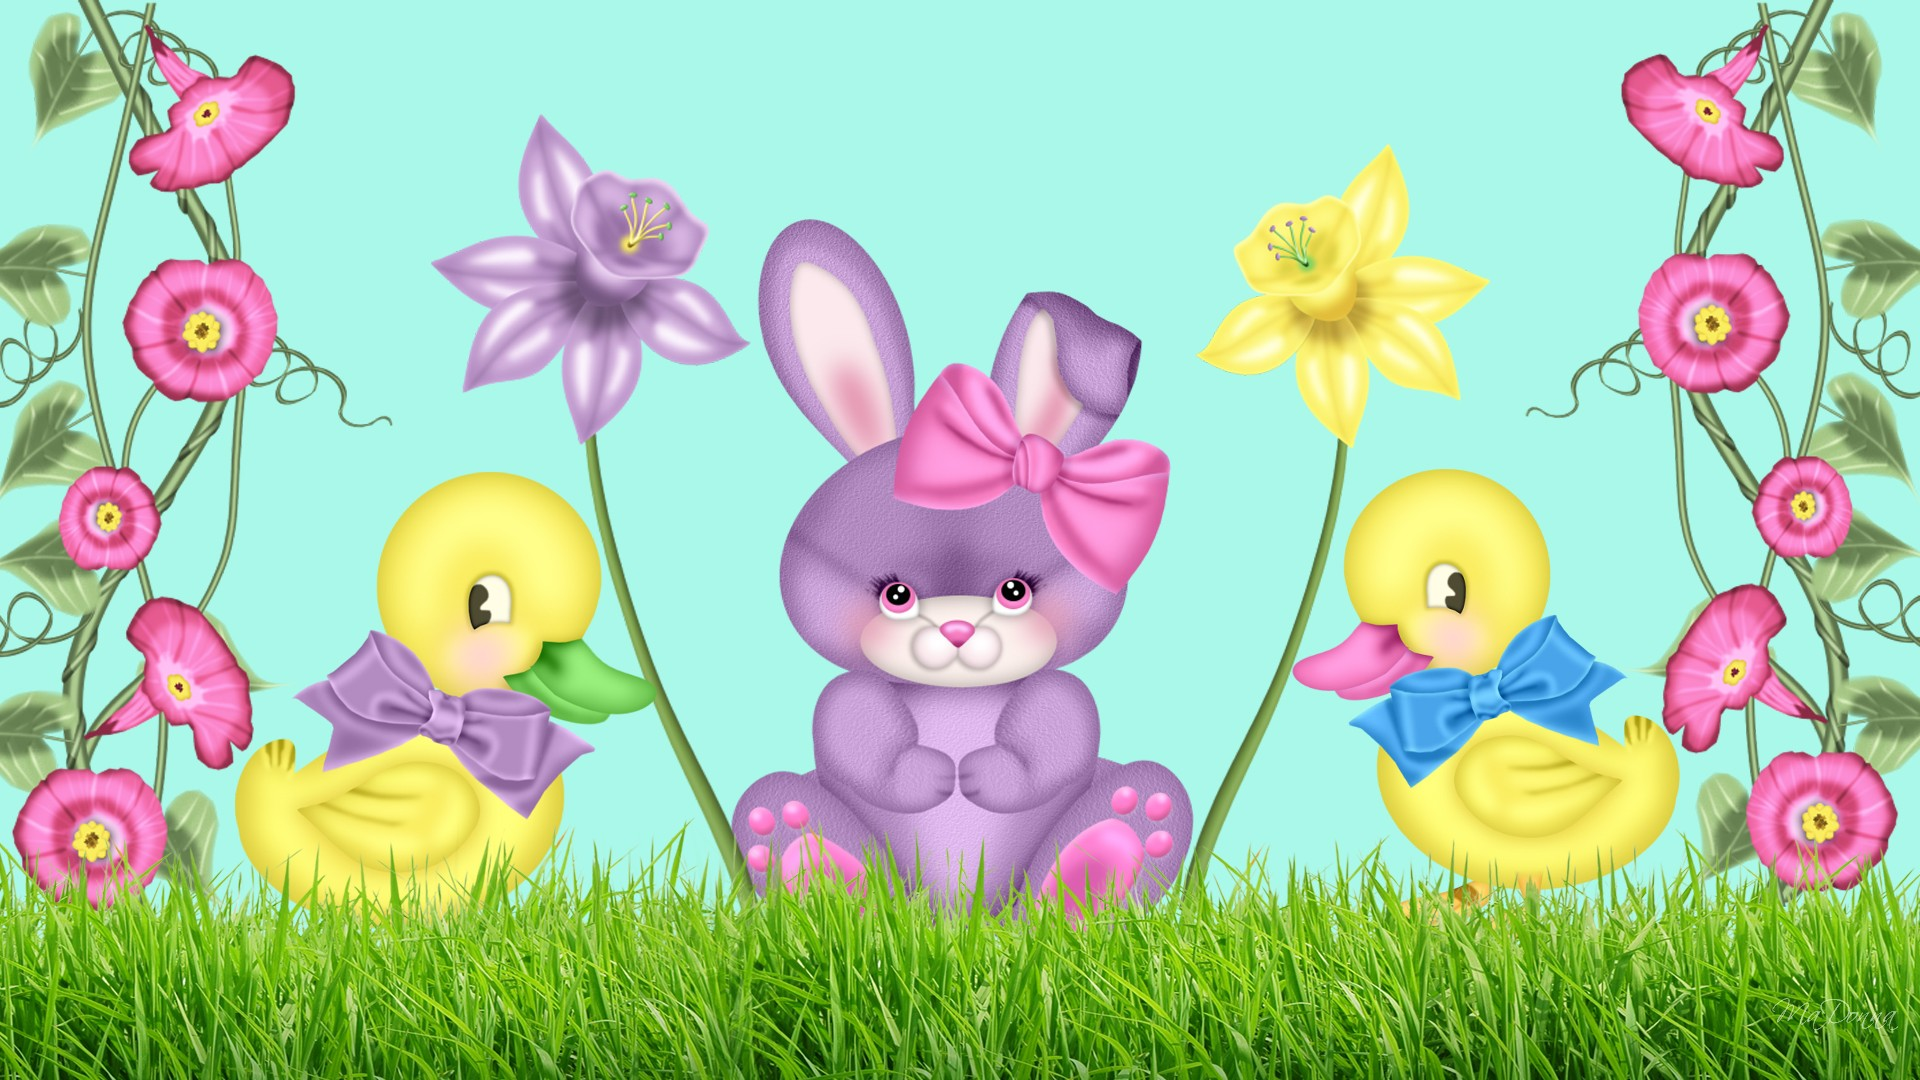 Wallpaper clipart easter Easter Images Clipart Wallpapers Pictures